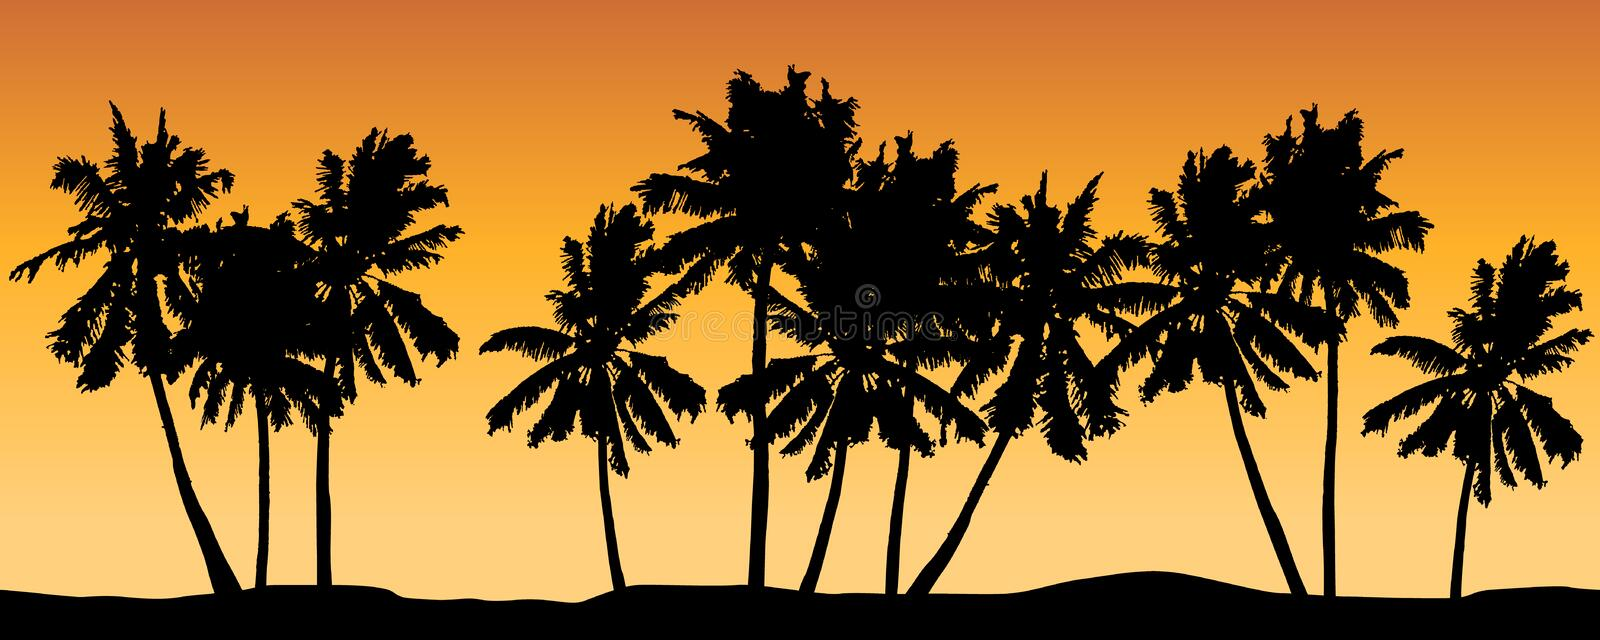 Seamless vector with palm trees and orange shaded background. royalty free illustration